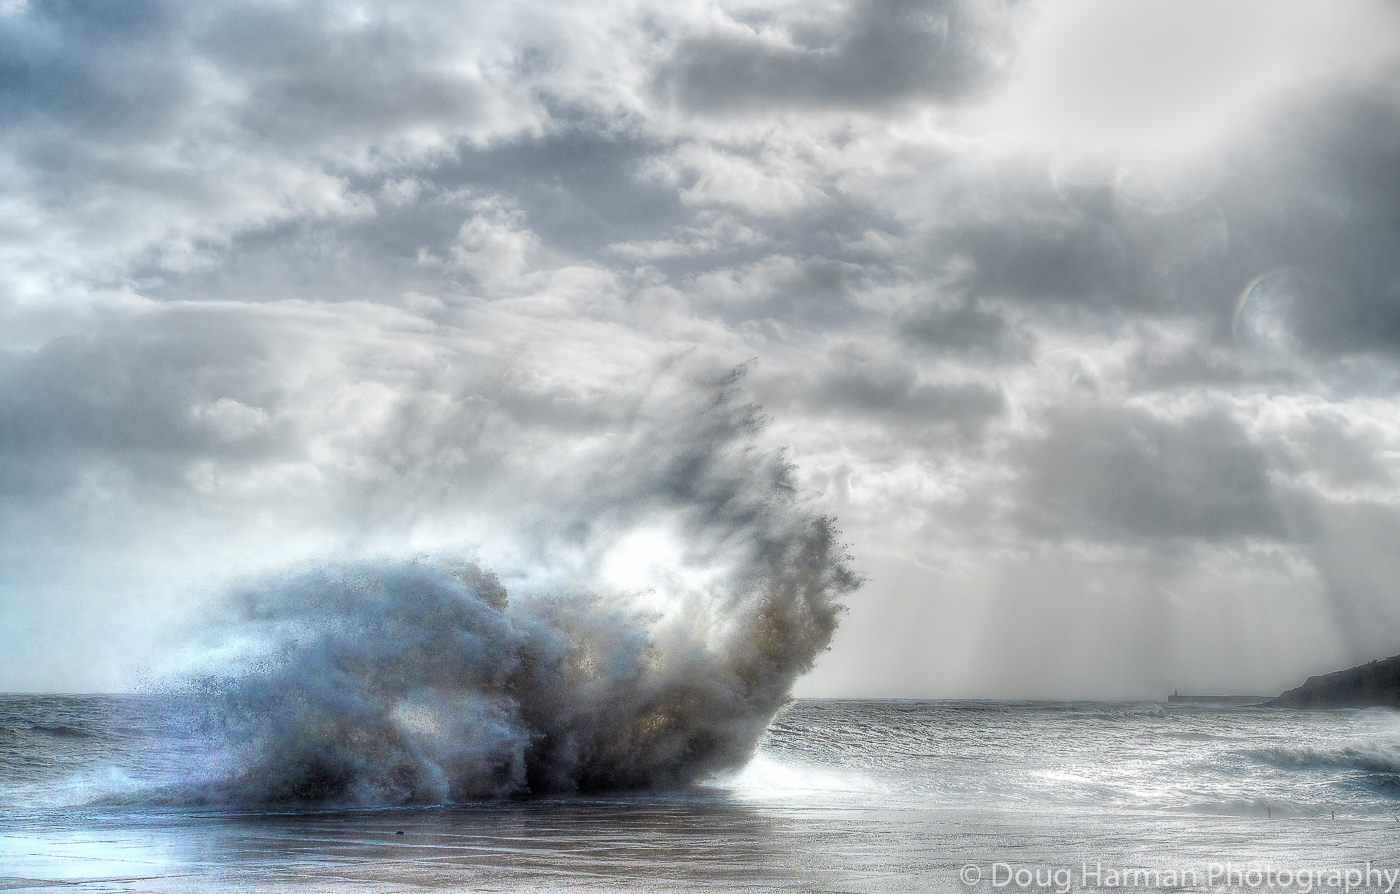 Shooting The Storm and Seascapes